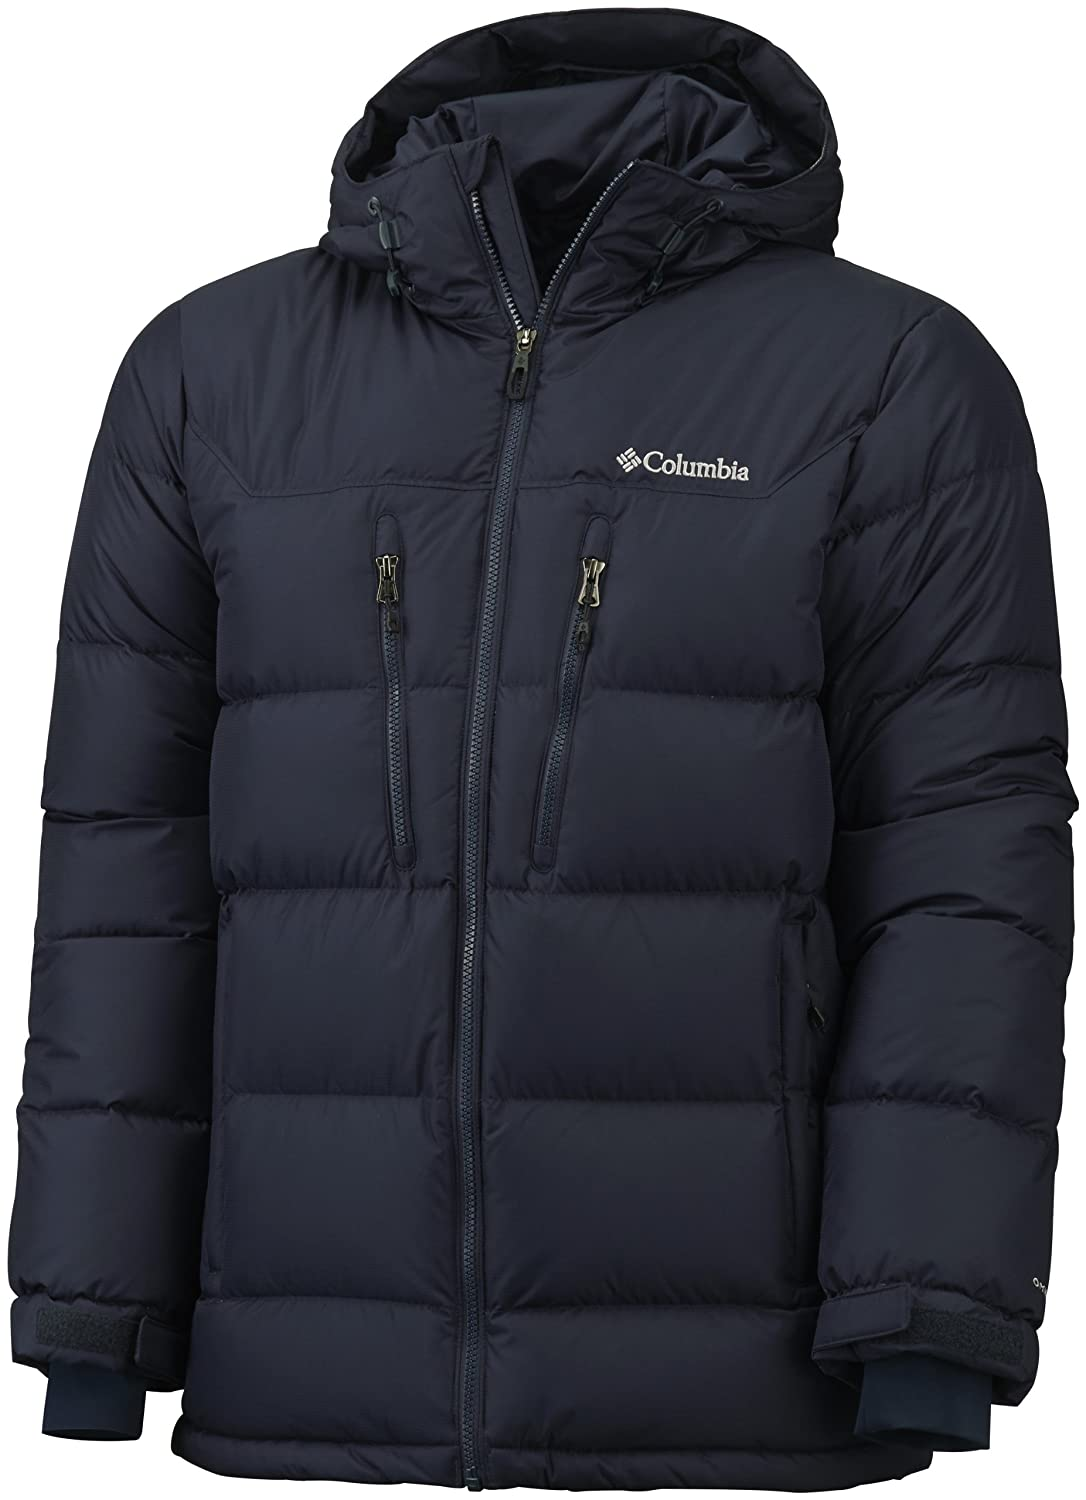 Columbia Herren Jacke Alaskan II Down Hooded Jacket